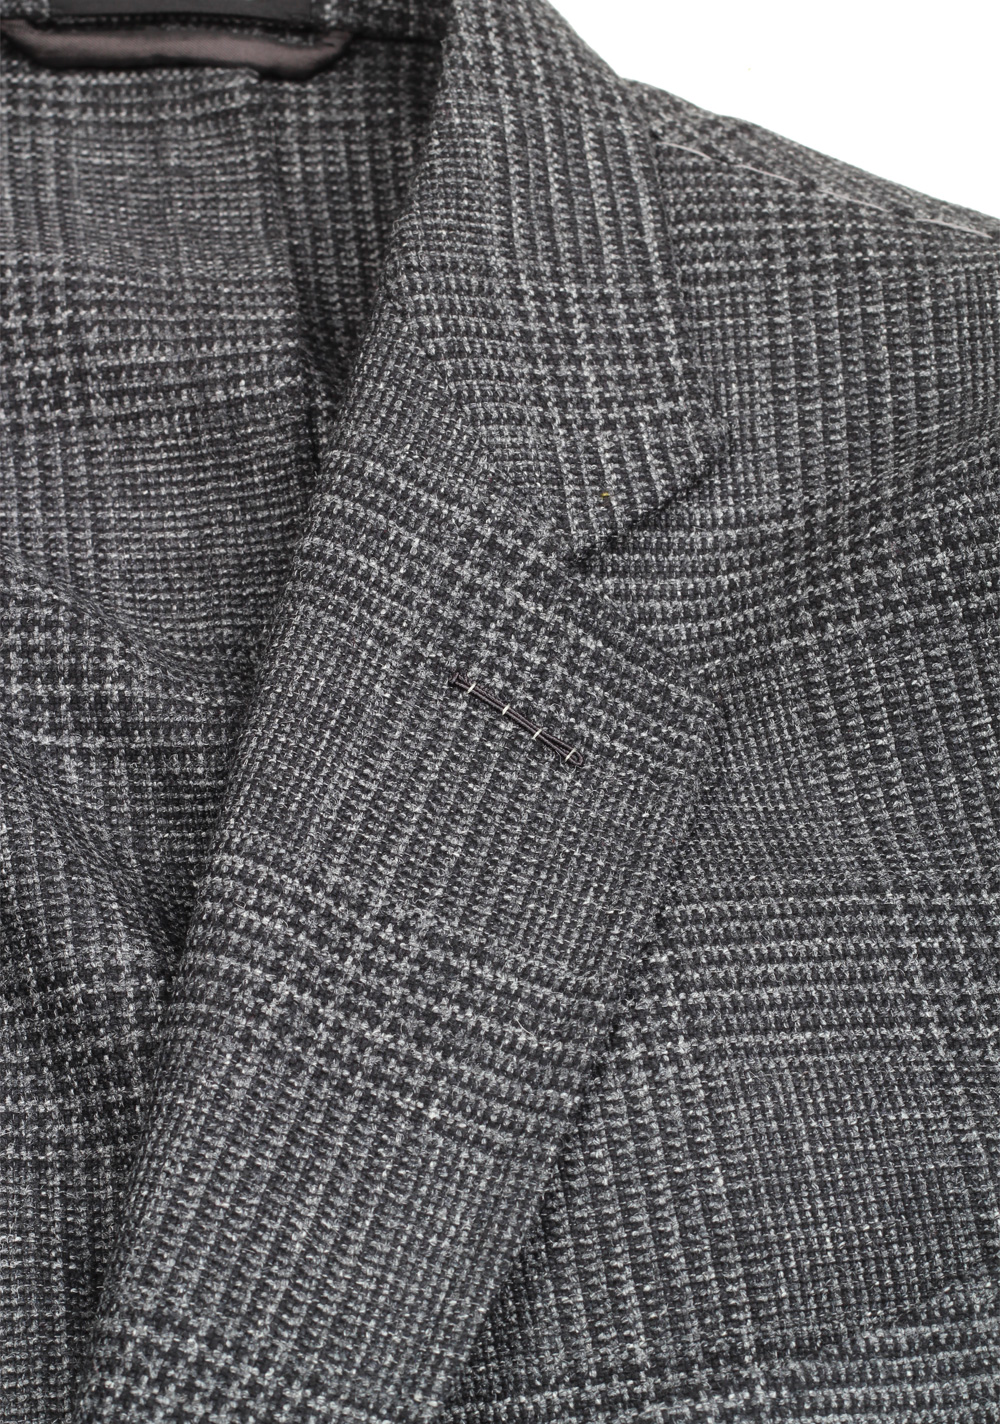 TOM FORD Shelton Checked Gray Sport Coat Size 54 / 44R U.S. | Costume Limité